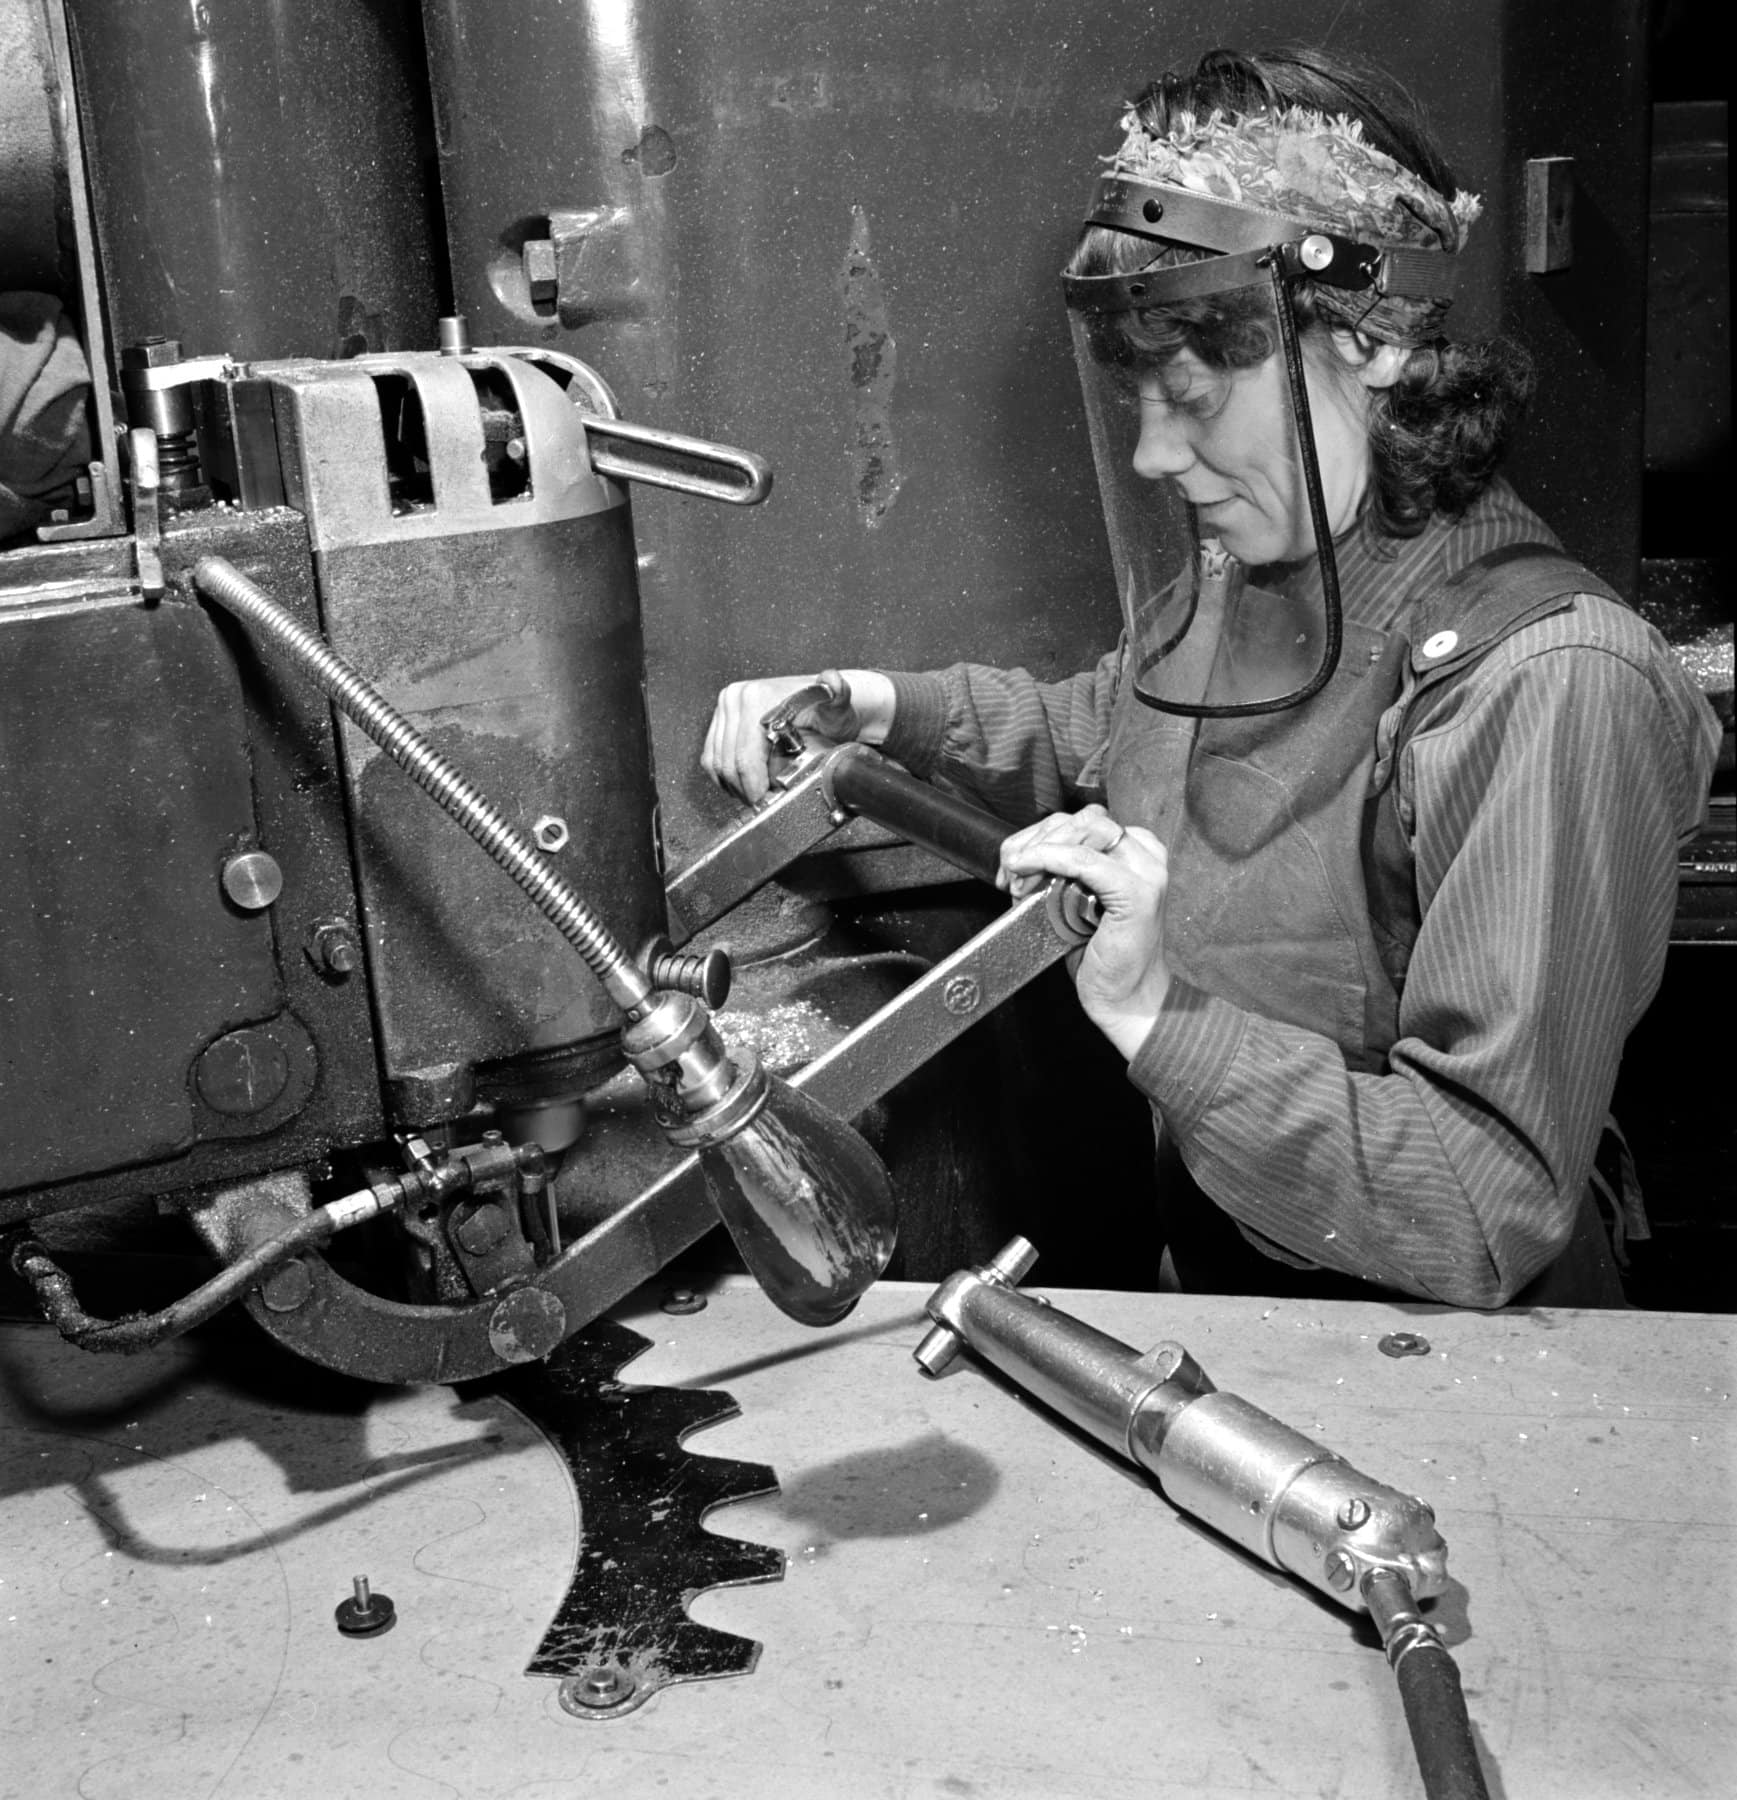 Drilling holes in a plane part for WWII